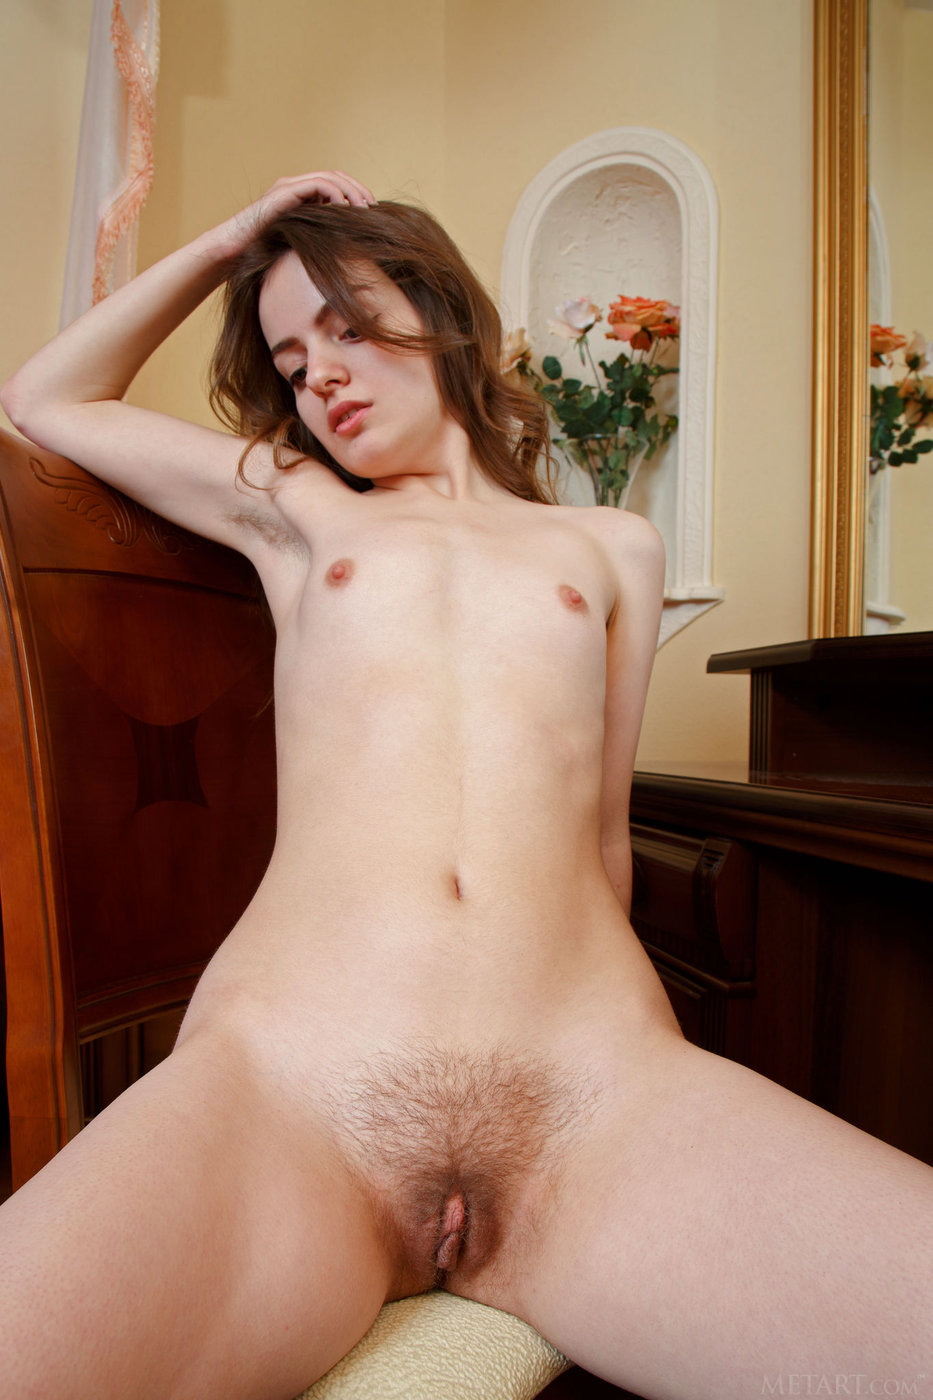 Brunette Babe With Tiny Tits And Hairy Pussy